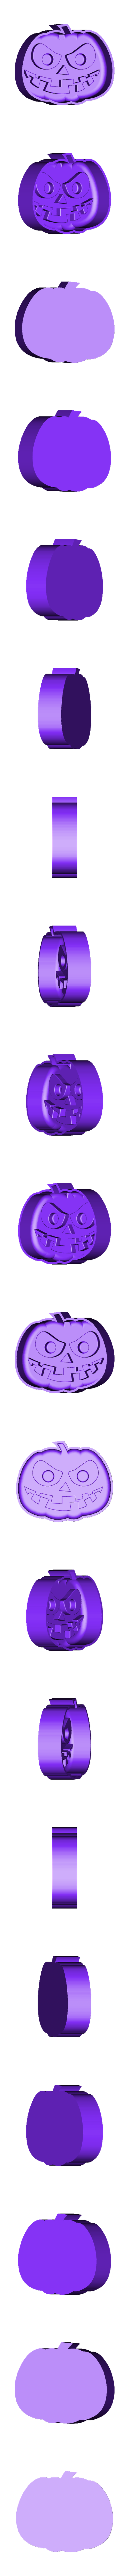 Pumpkin-3.stl Download free STL file Scary Halloween Pumpkin Molds • 3D printable design, crzldesign